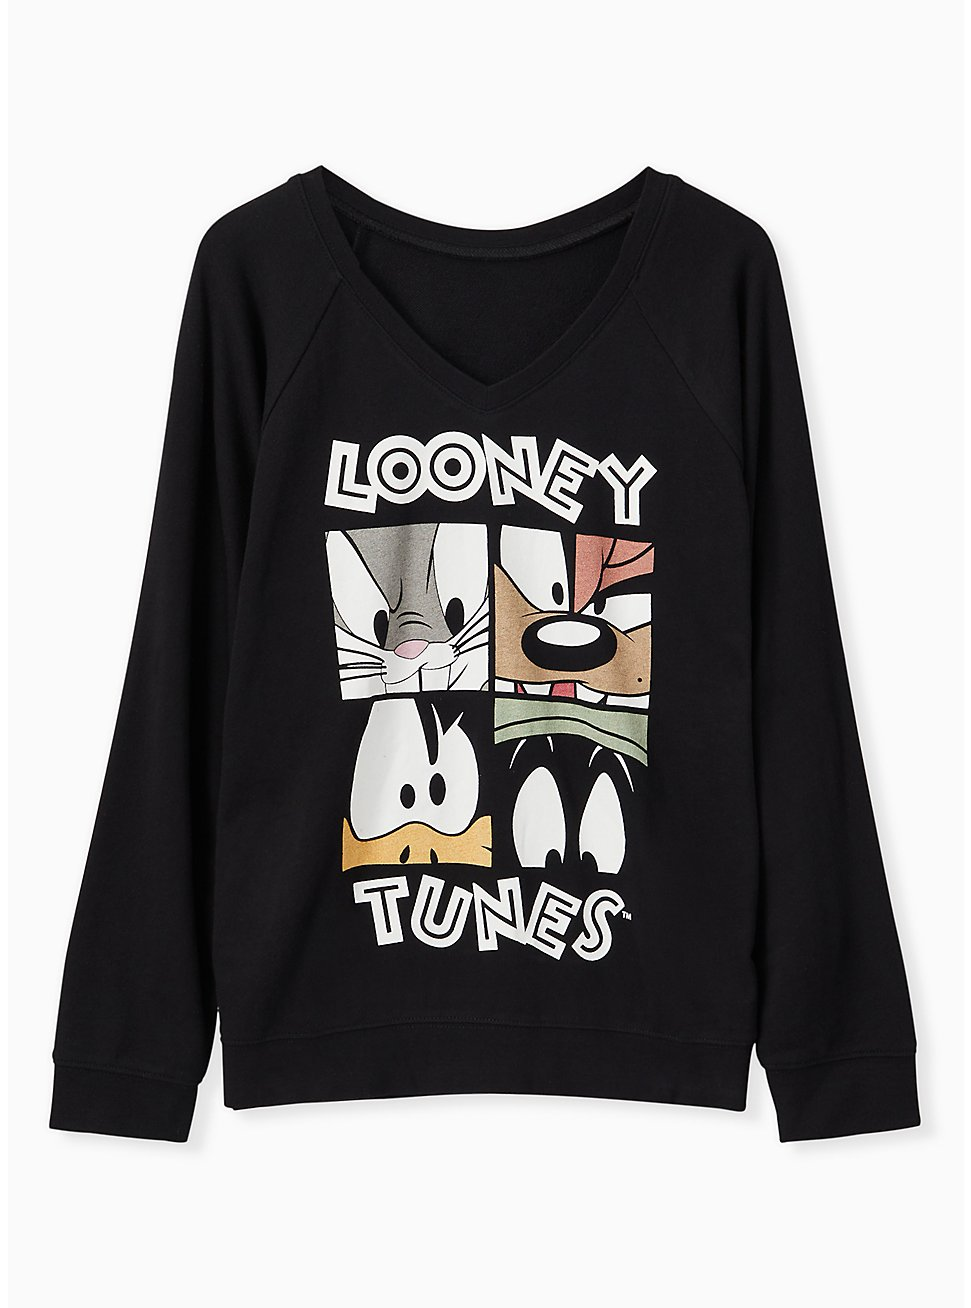 Looney Tunes Characters Black V-Neck Sweatshirt, DEEP BLACK, hi-res